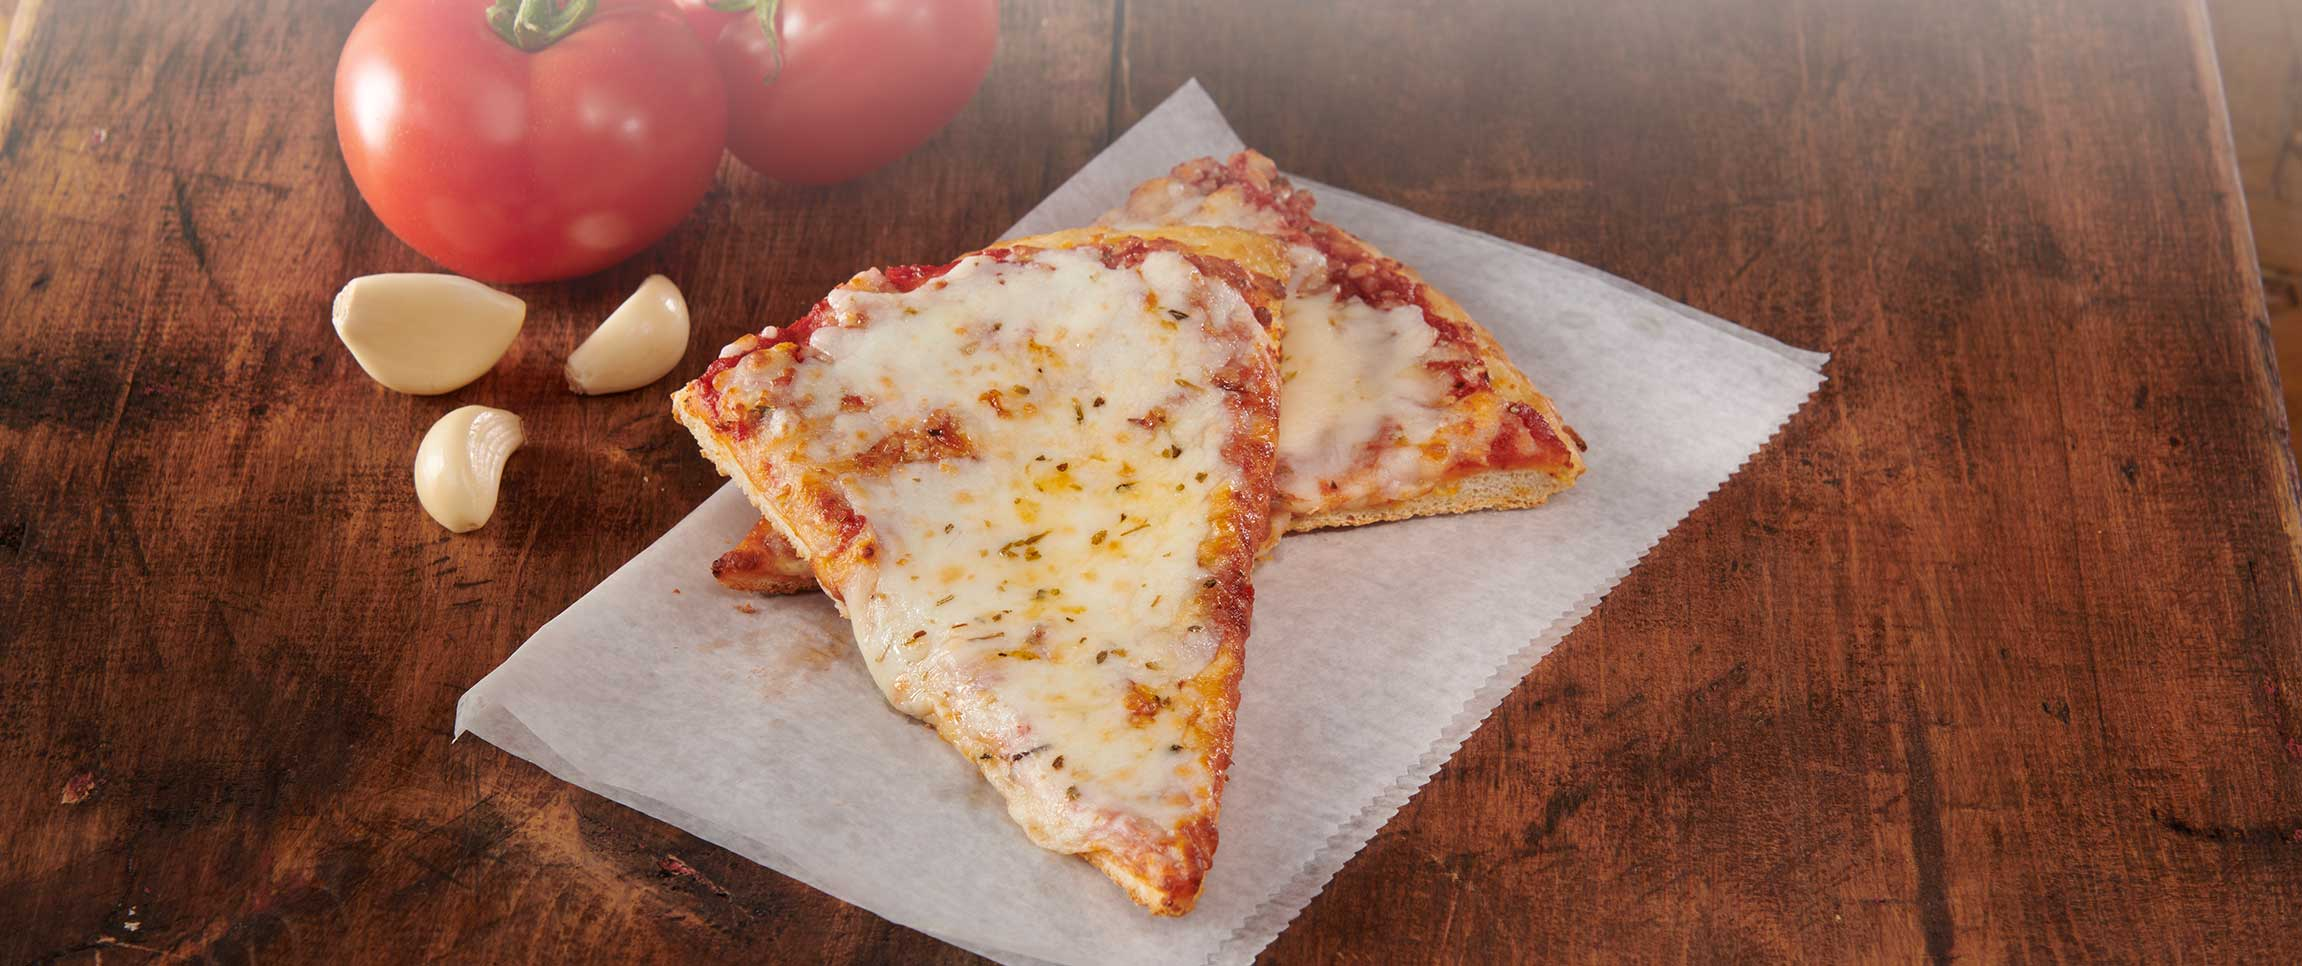 Vai Fresco Cheese Pizza Slices